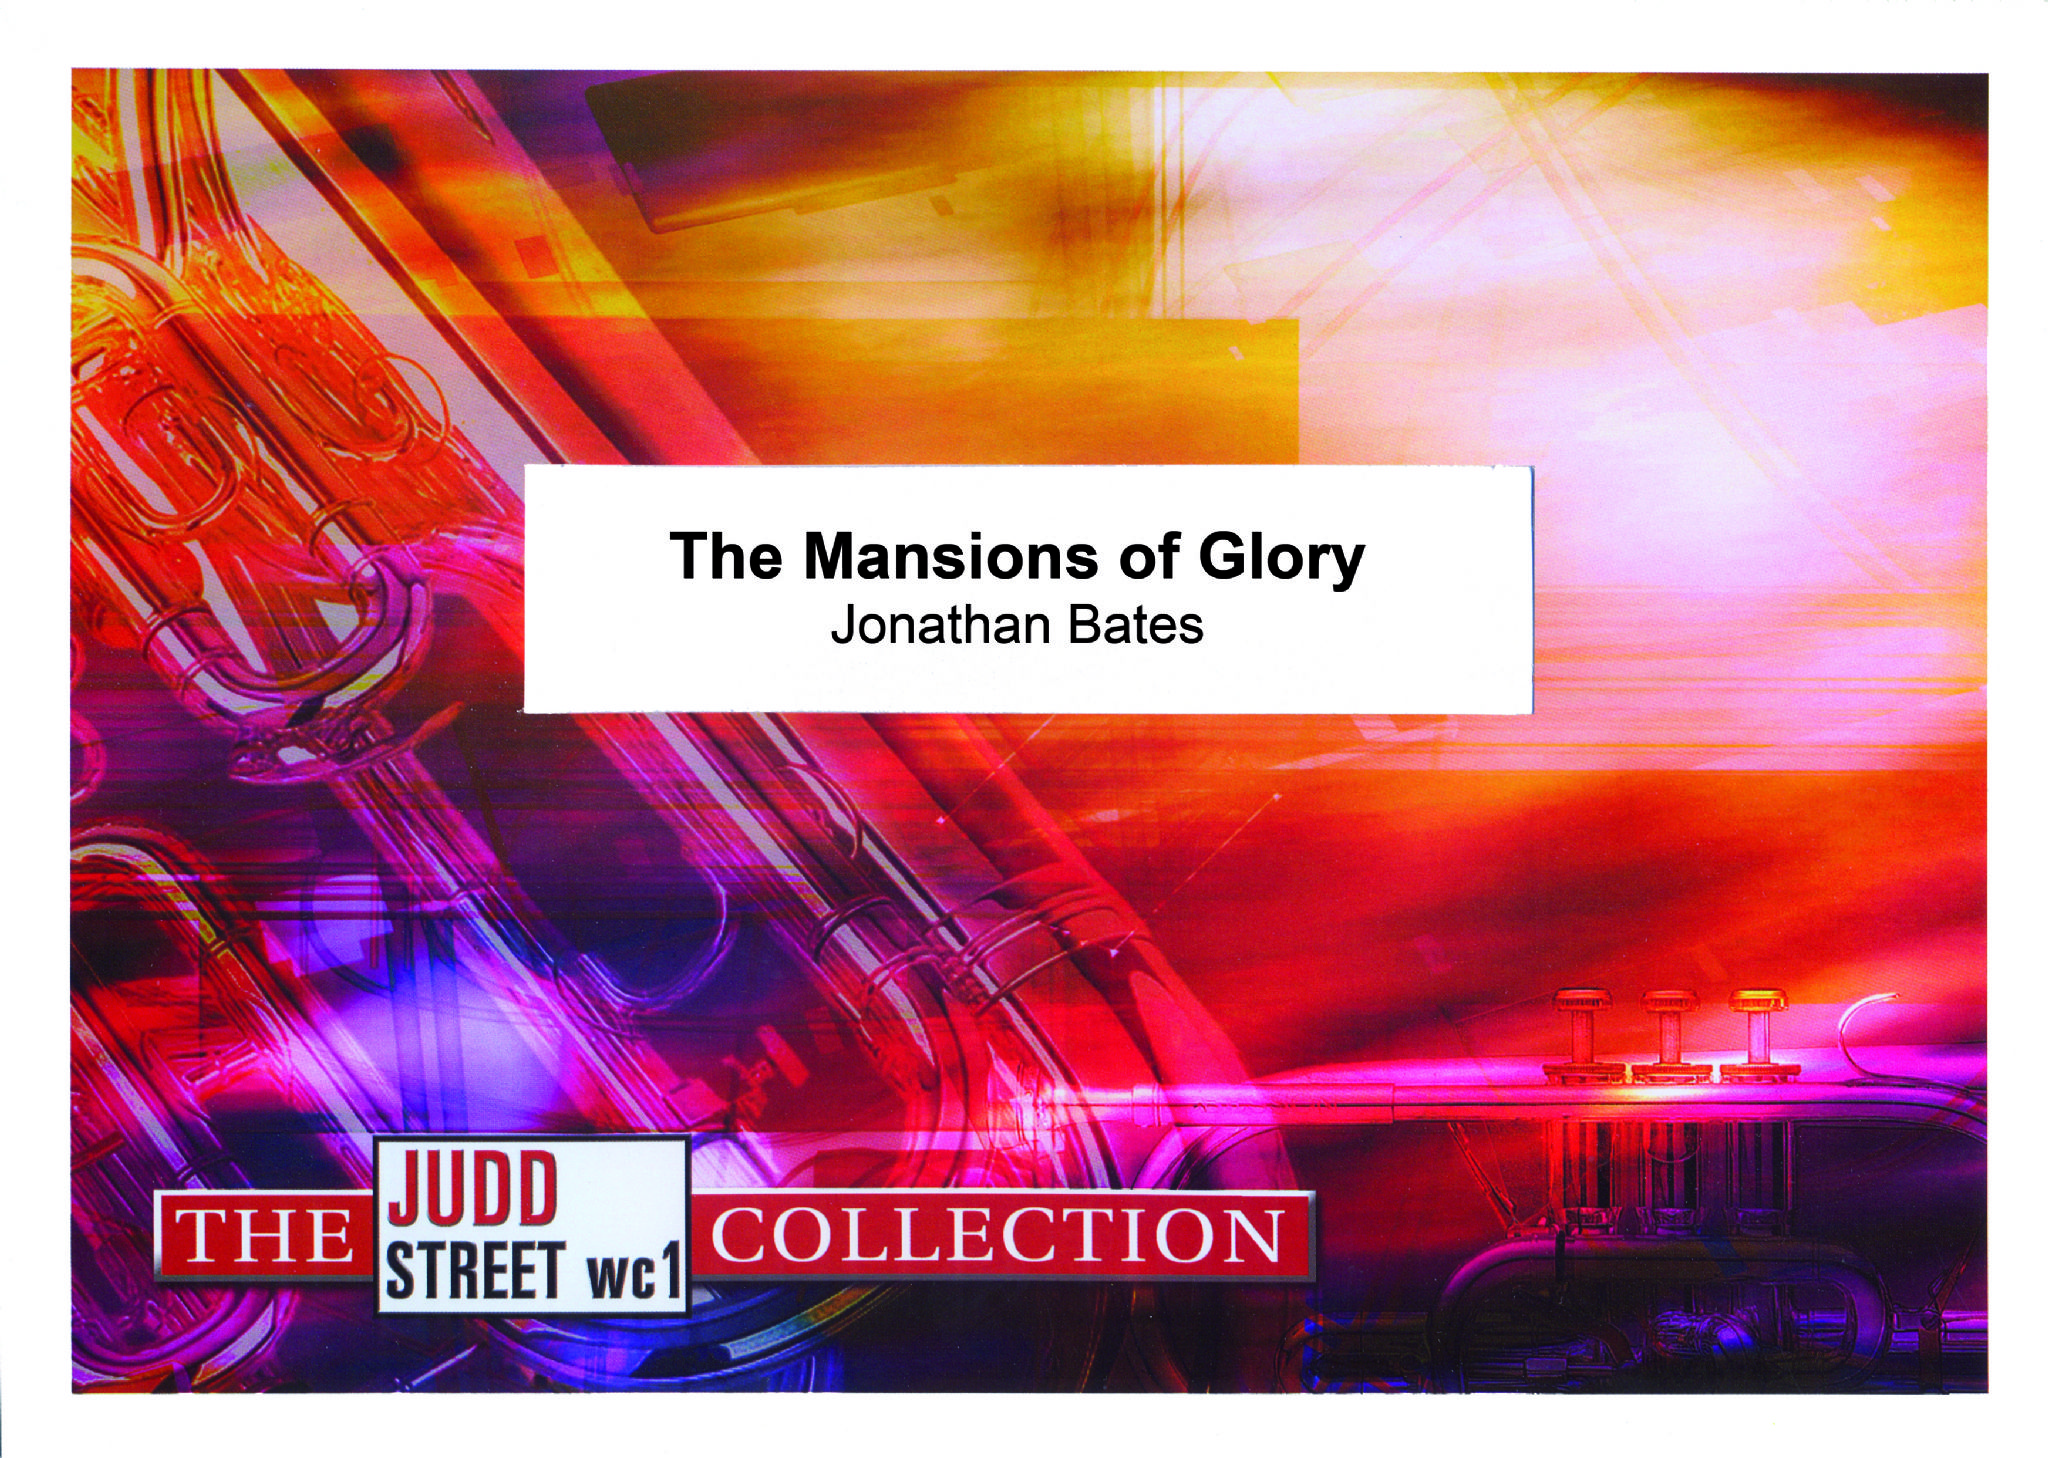 Judd: The Mansions of Glory - Jonathan Bates